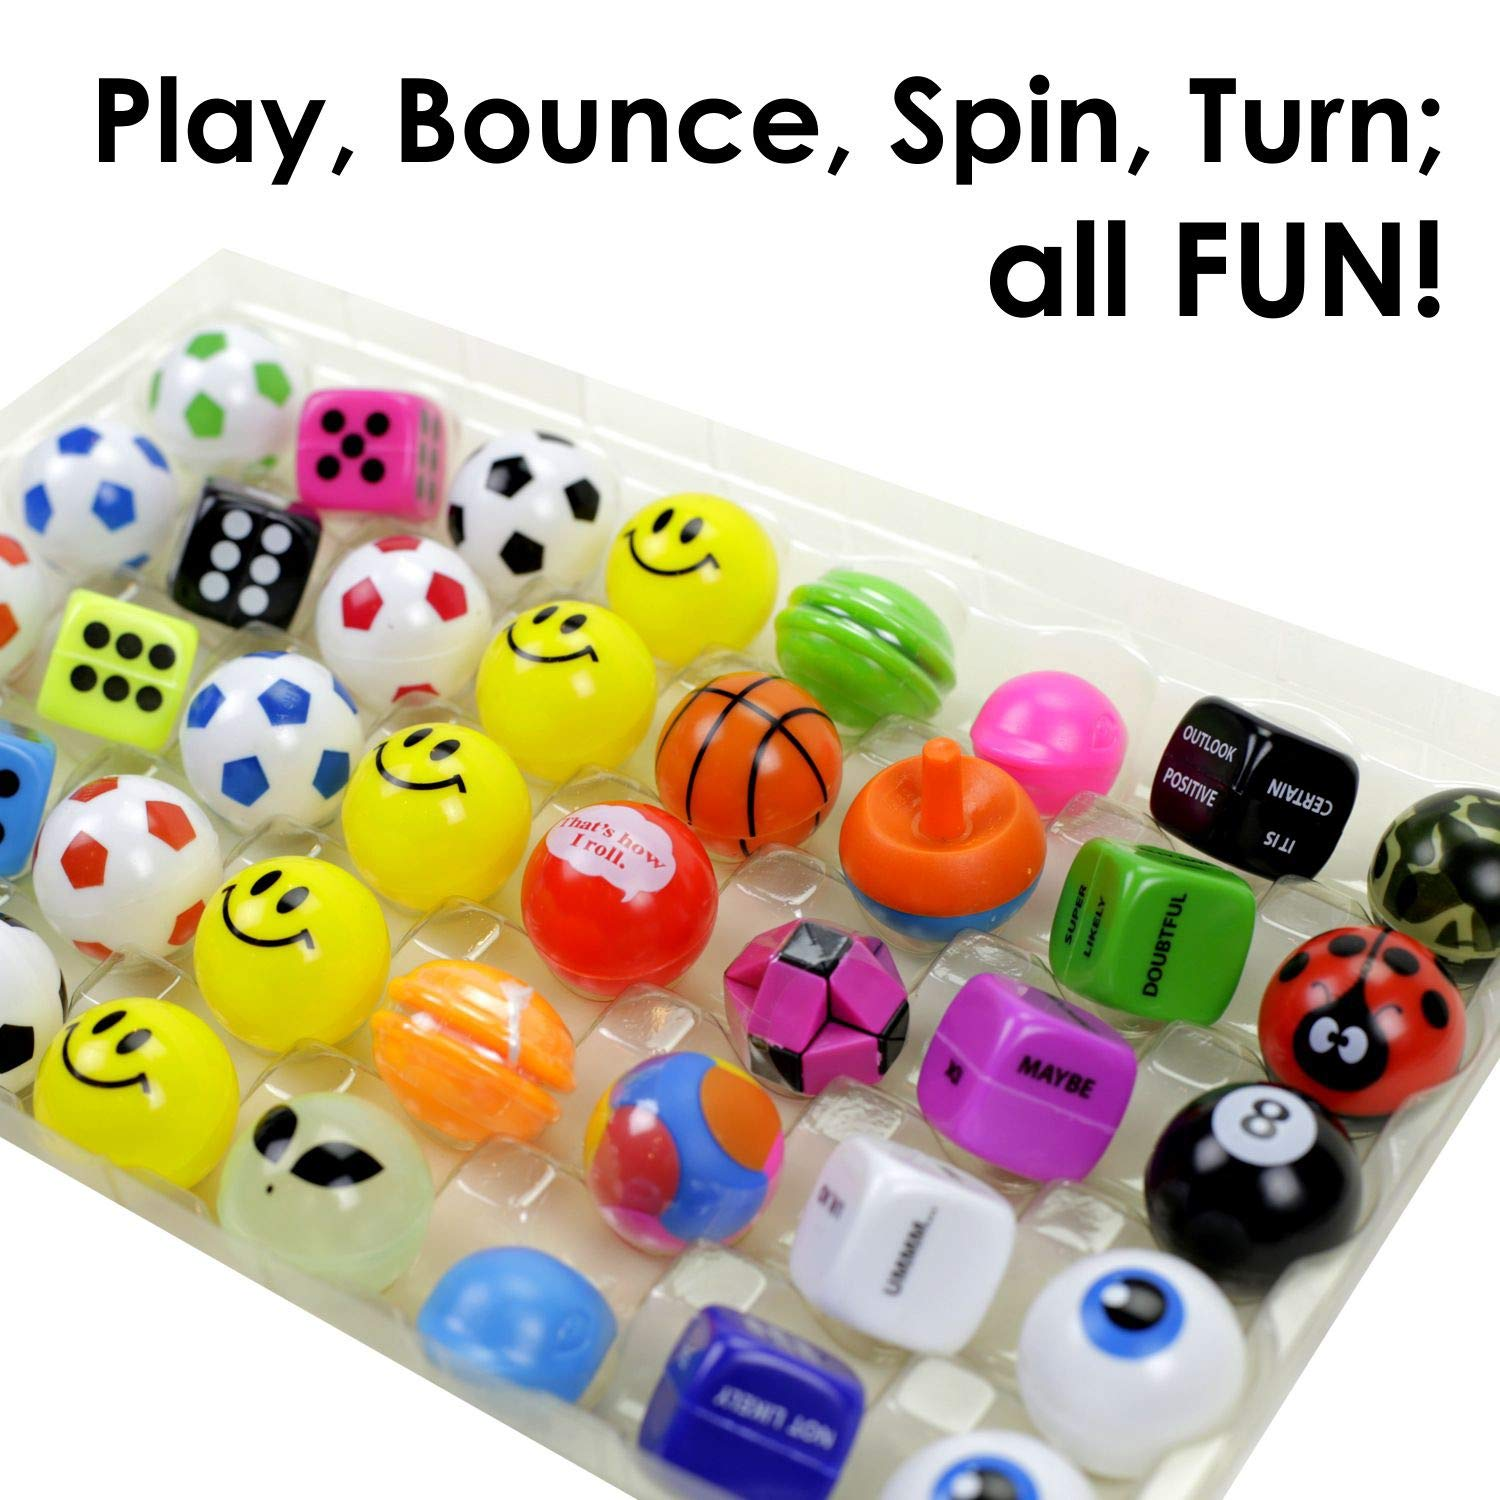 Soccer Balls Size- 32mm Whistles Gifts 50 pcs Combination of Dice Fortune Dice /& Etc Prizes /& Rewards Entervending Mystery Mix Great for Vending Puzzles